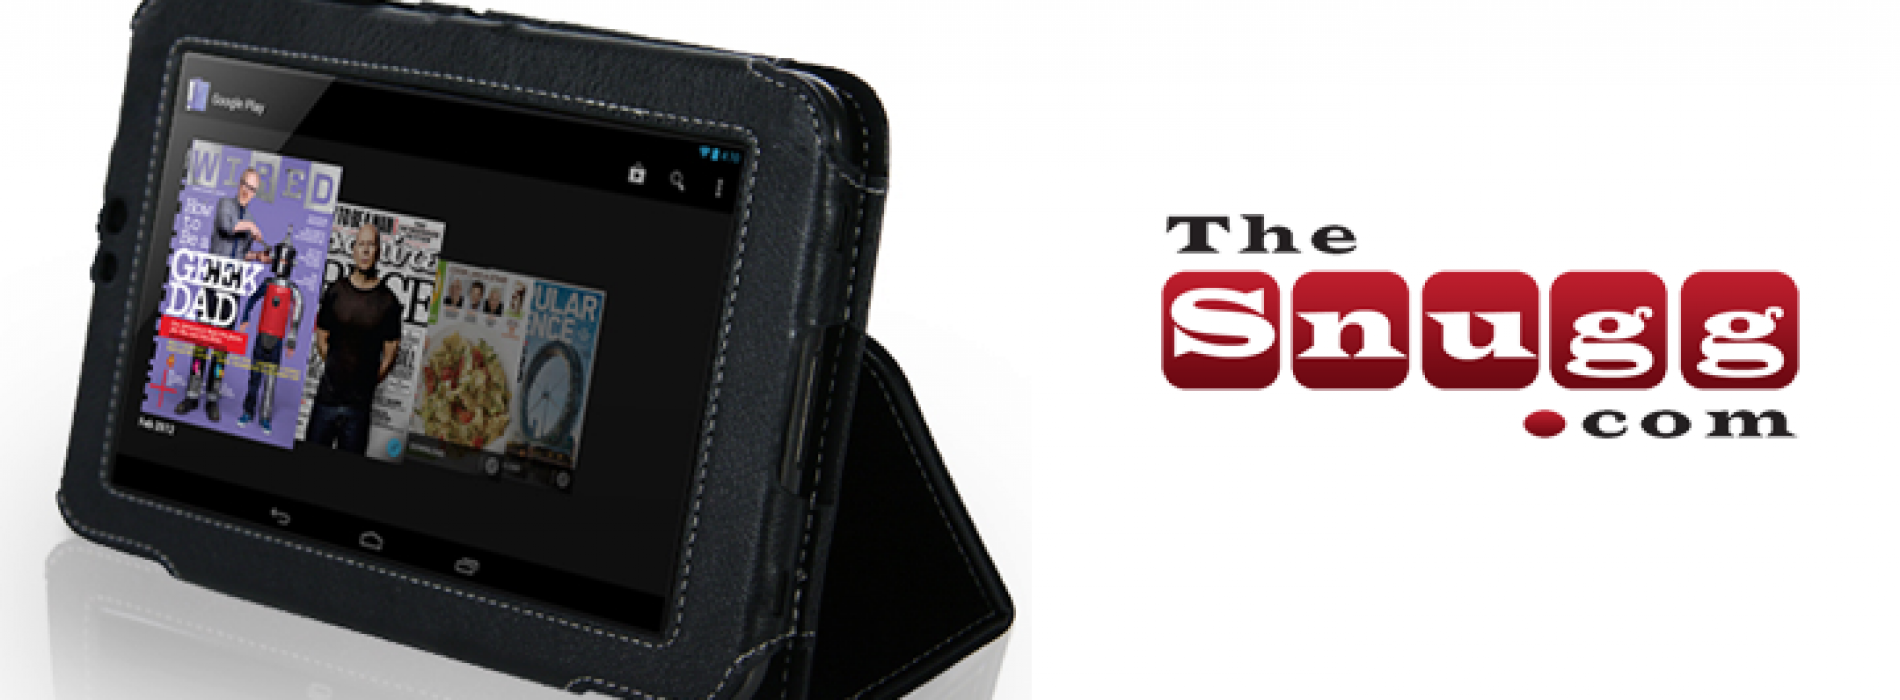 Thesnugg.com Nexus 7 case review